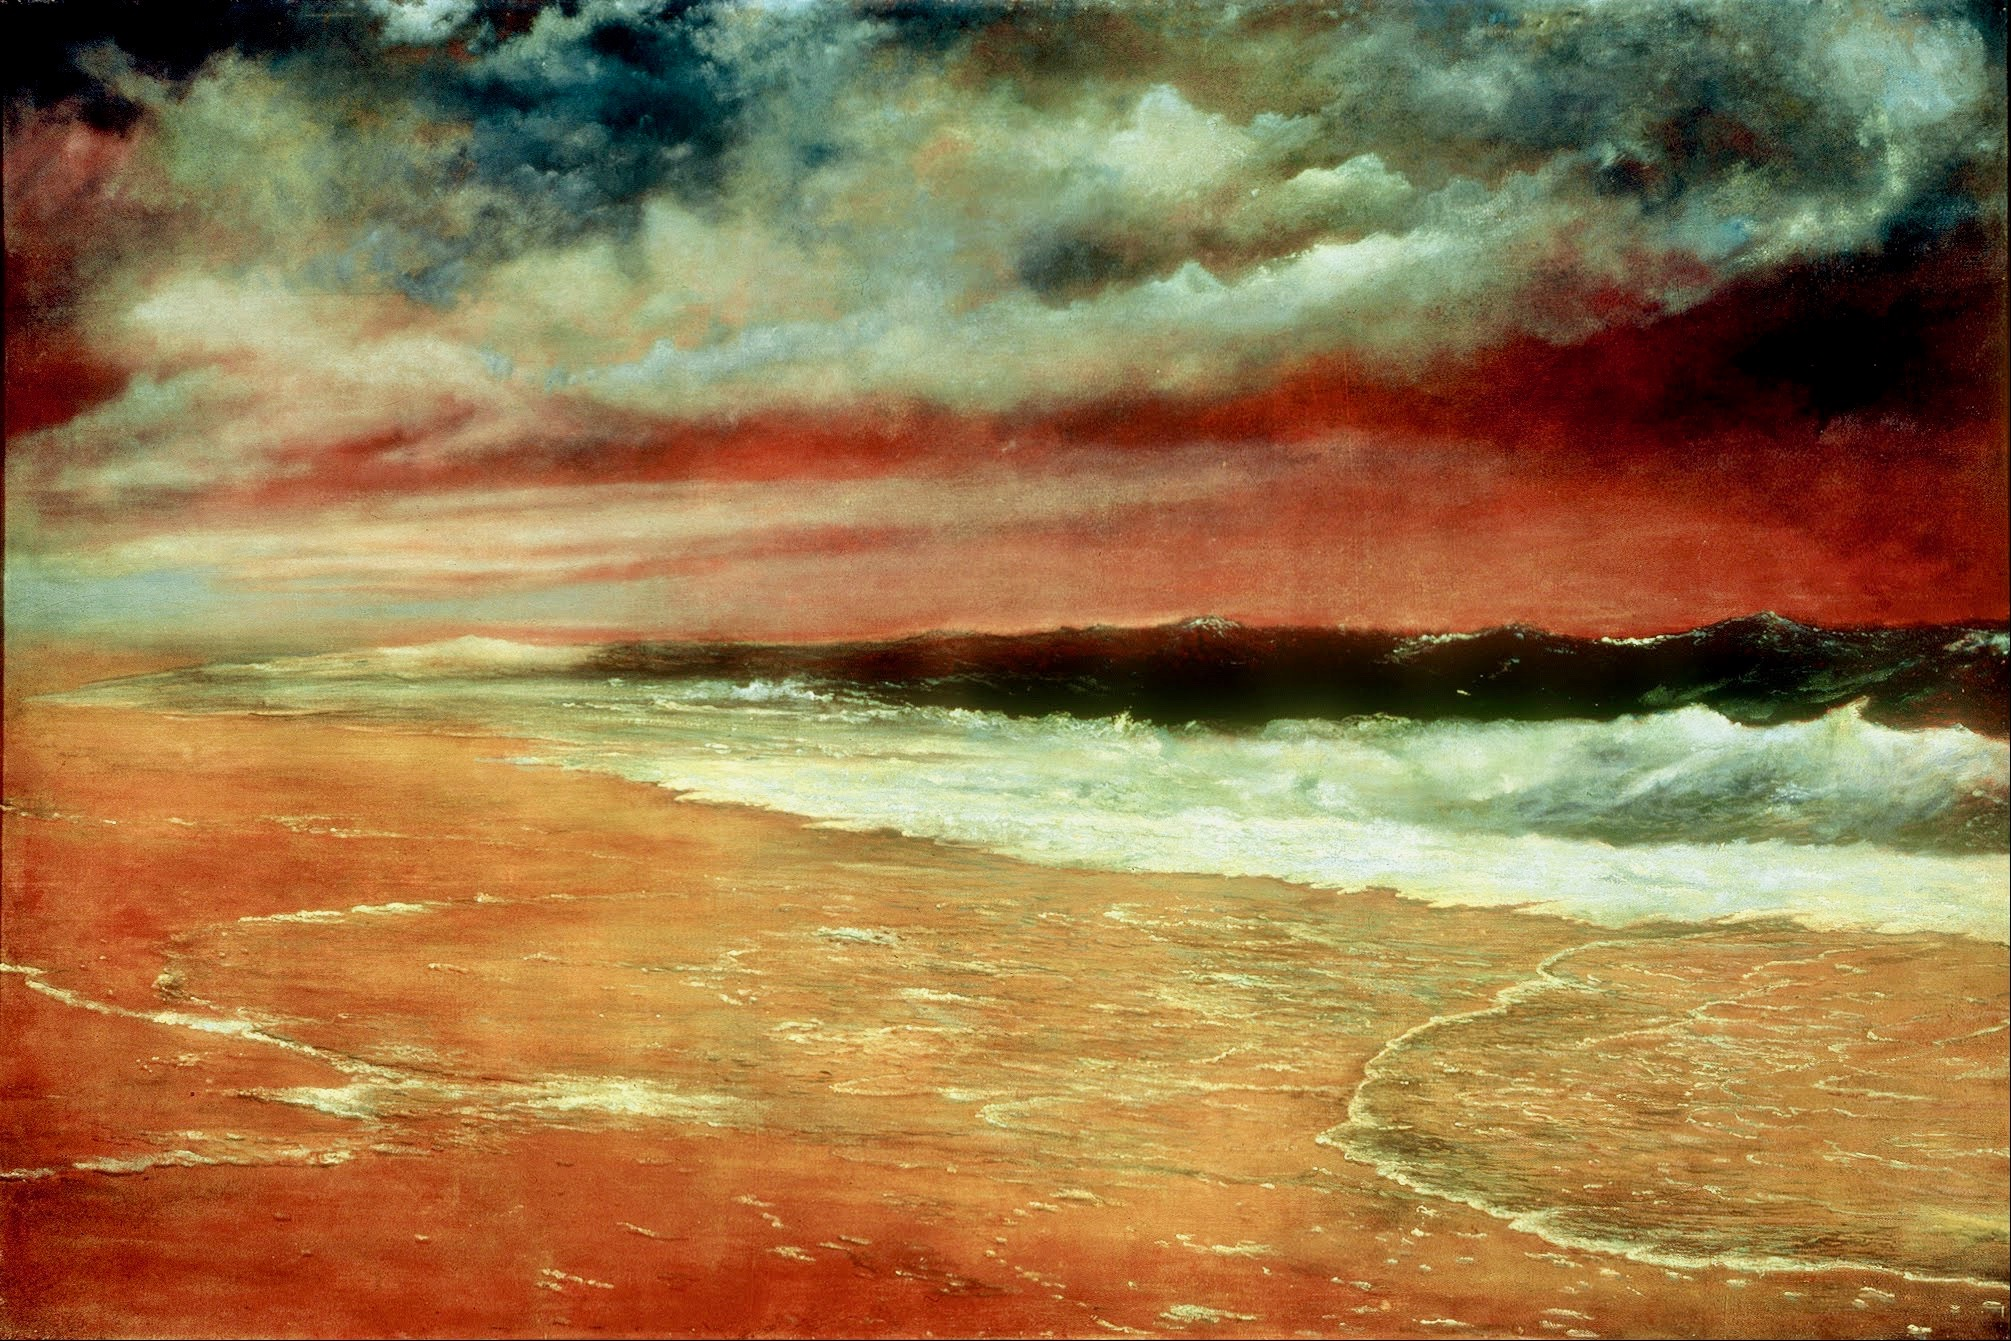 Joaquín Clausell Late Afternoon by the Sea The Red Wave Google Art Project copy